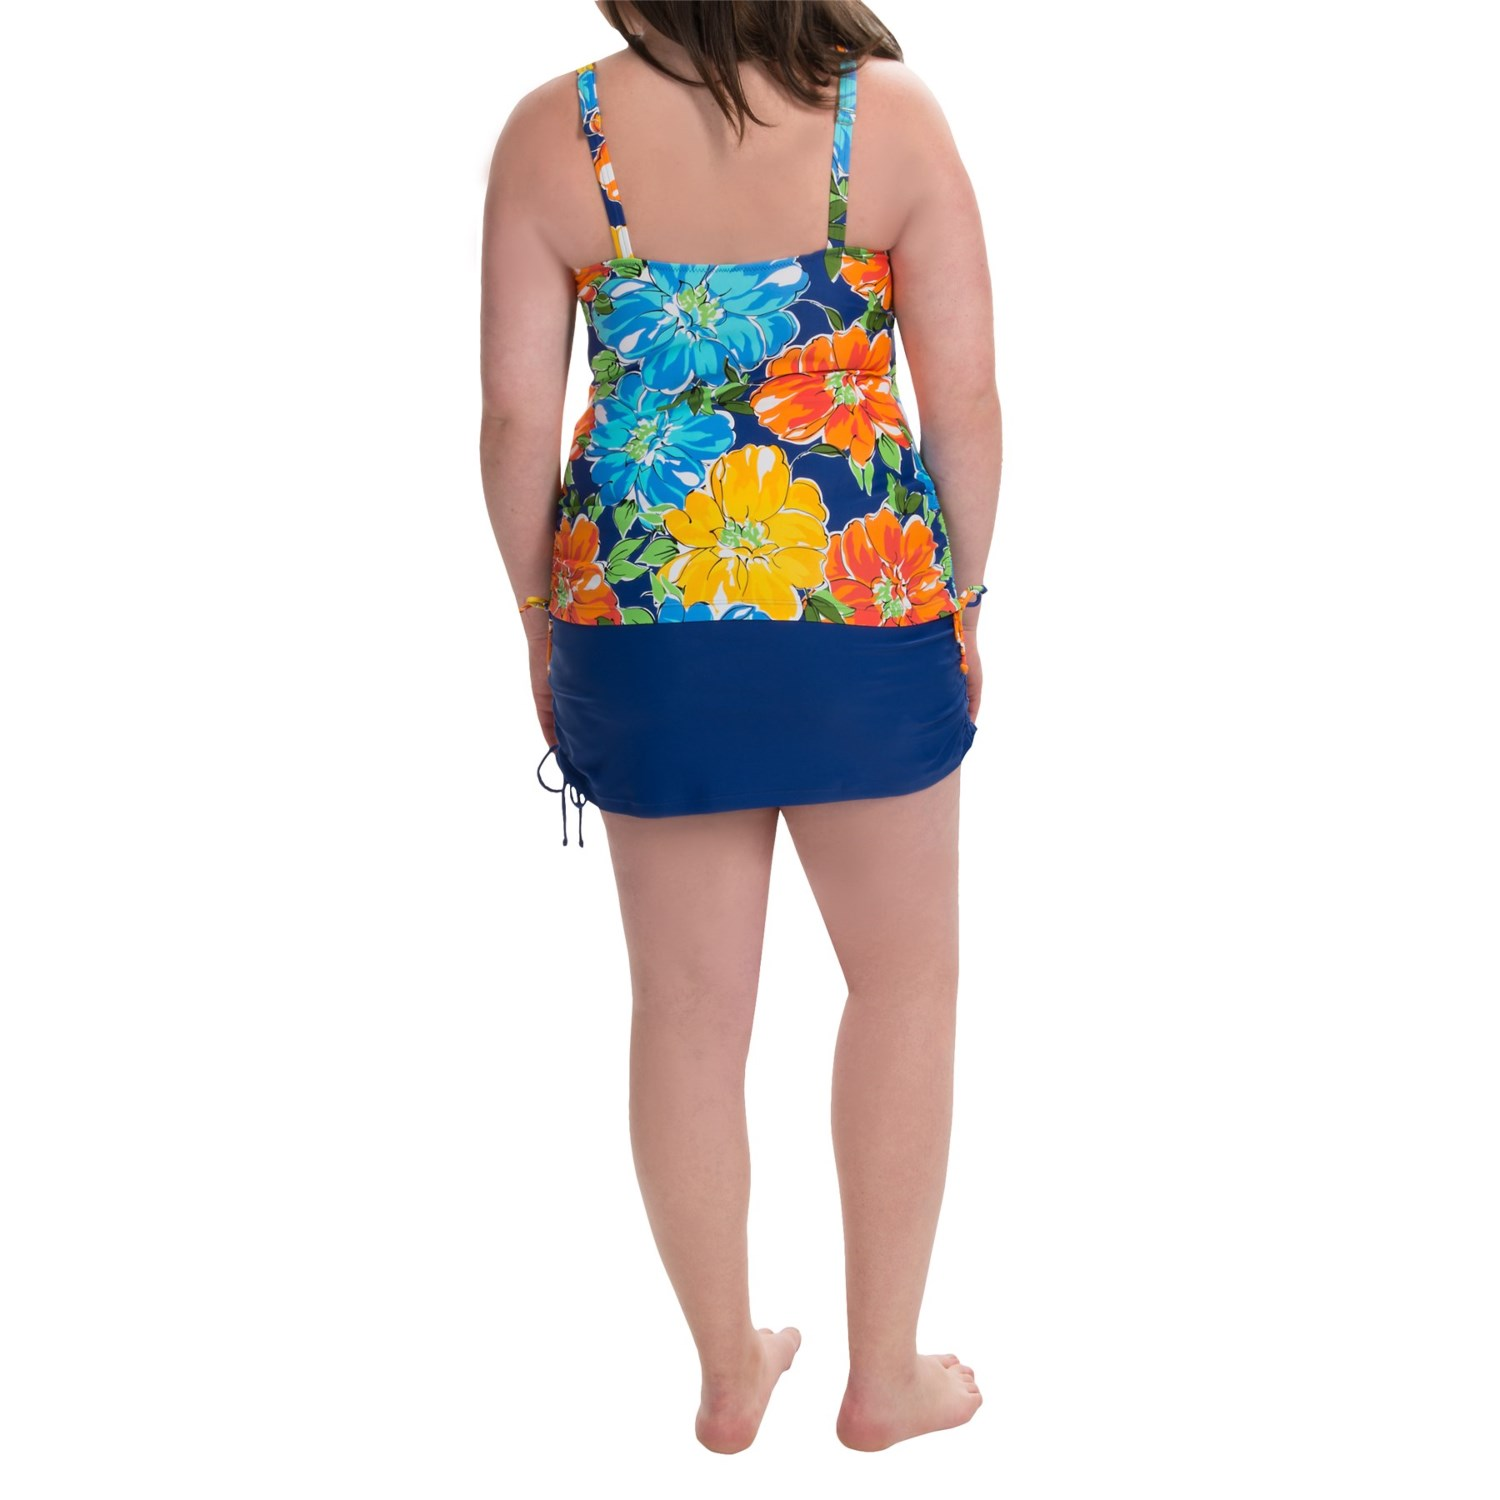 silver by gottex ruched skirt tankini for plus size